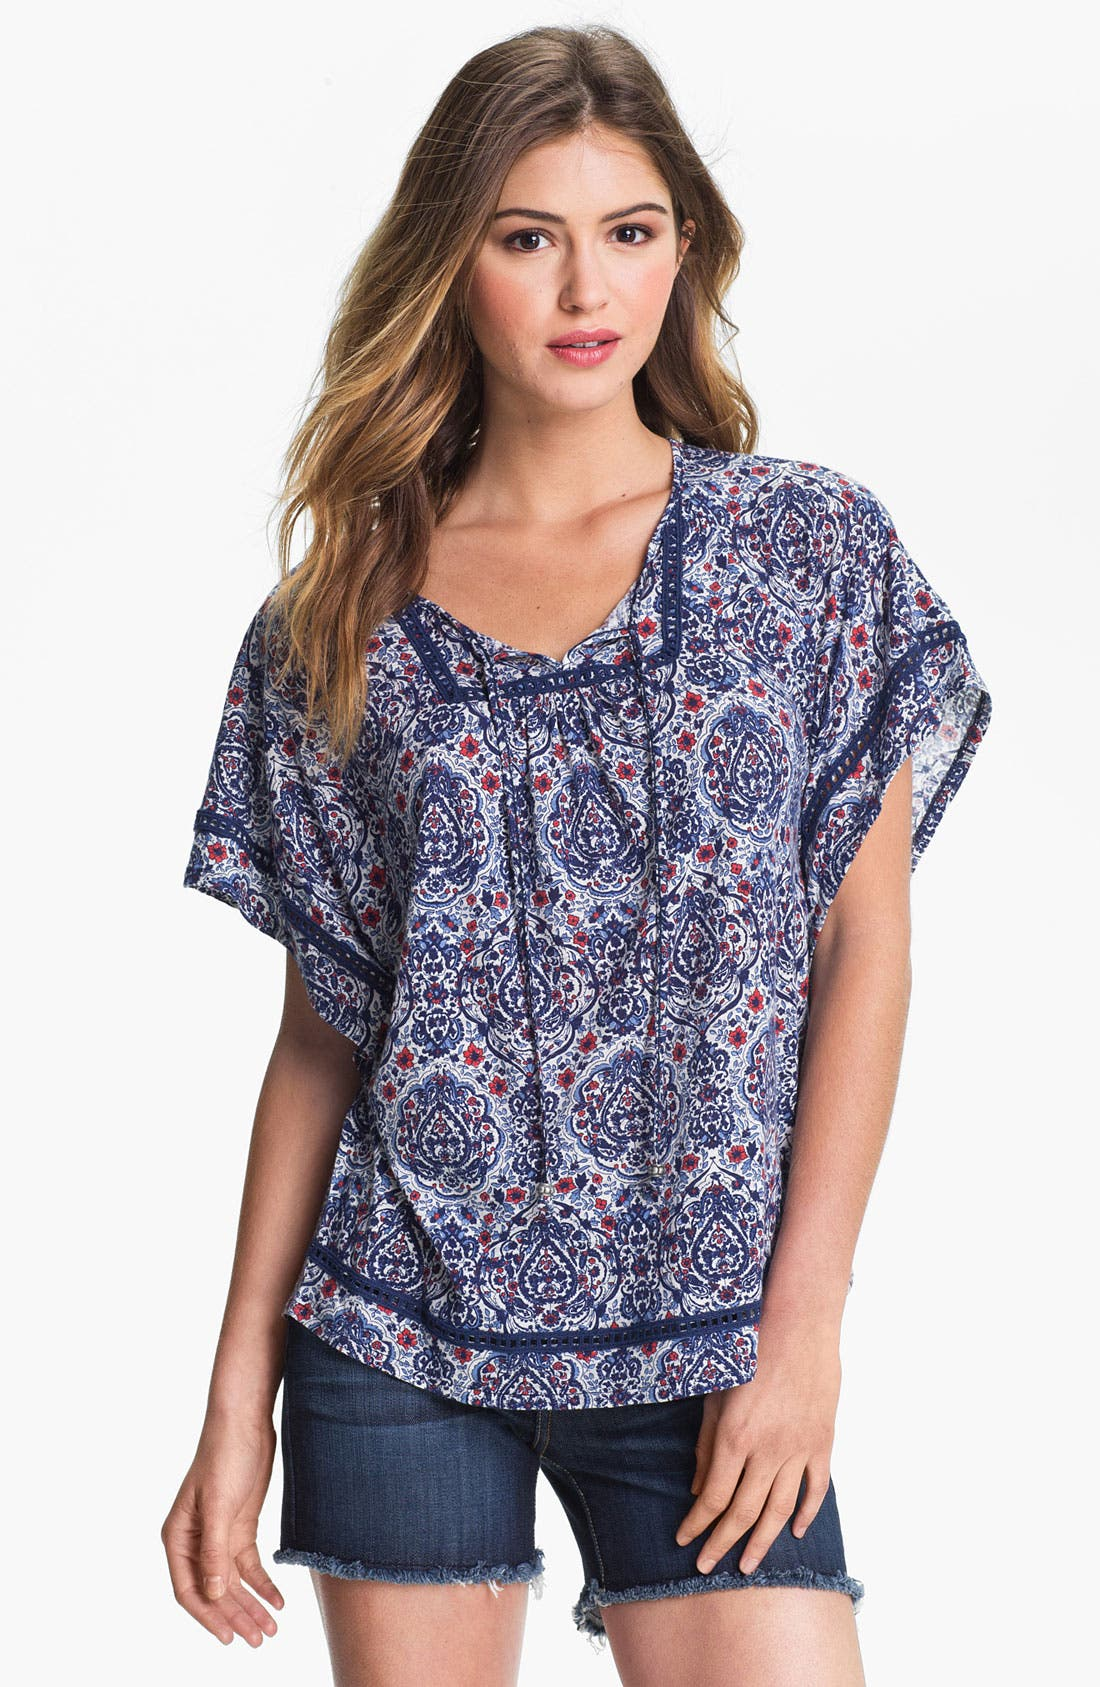 Alternate Image 1 Selected - Lucky Brand 'Temezcal Beatrix' Top